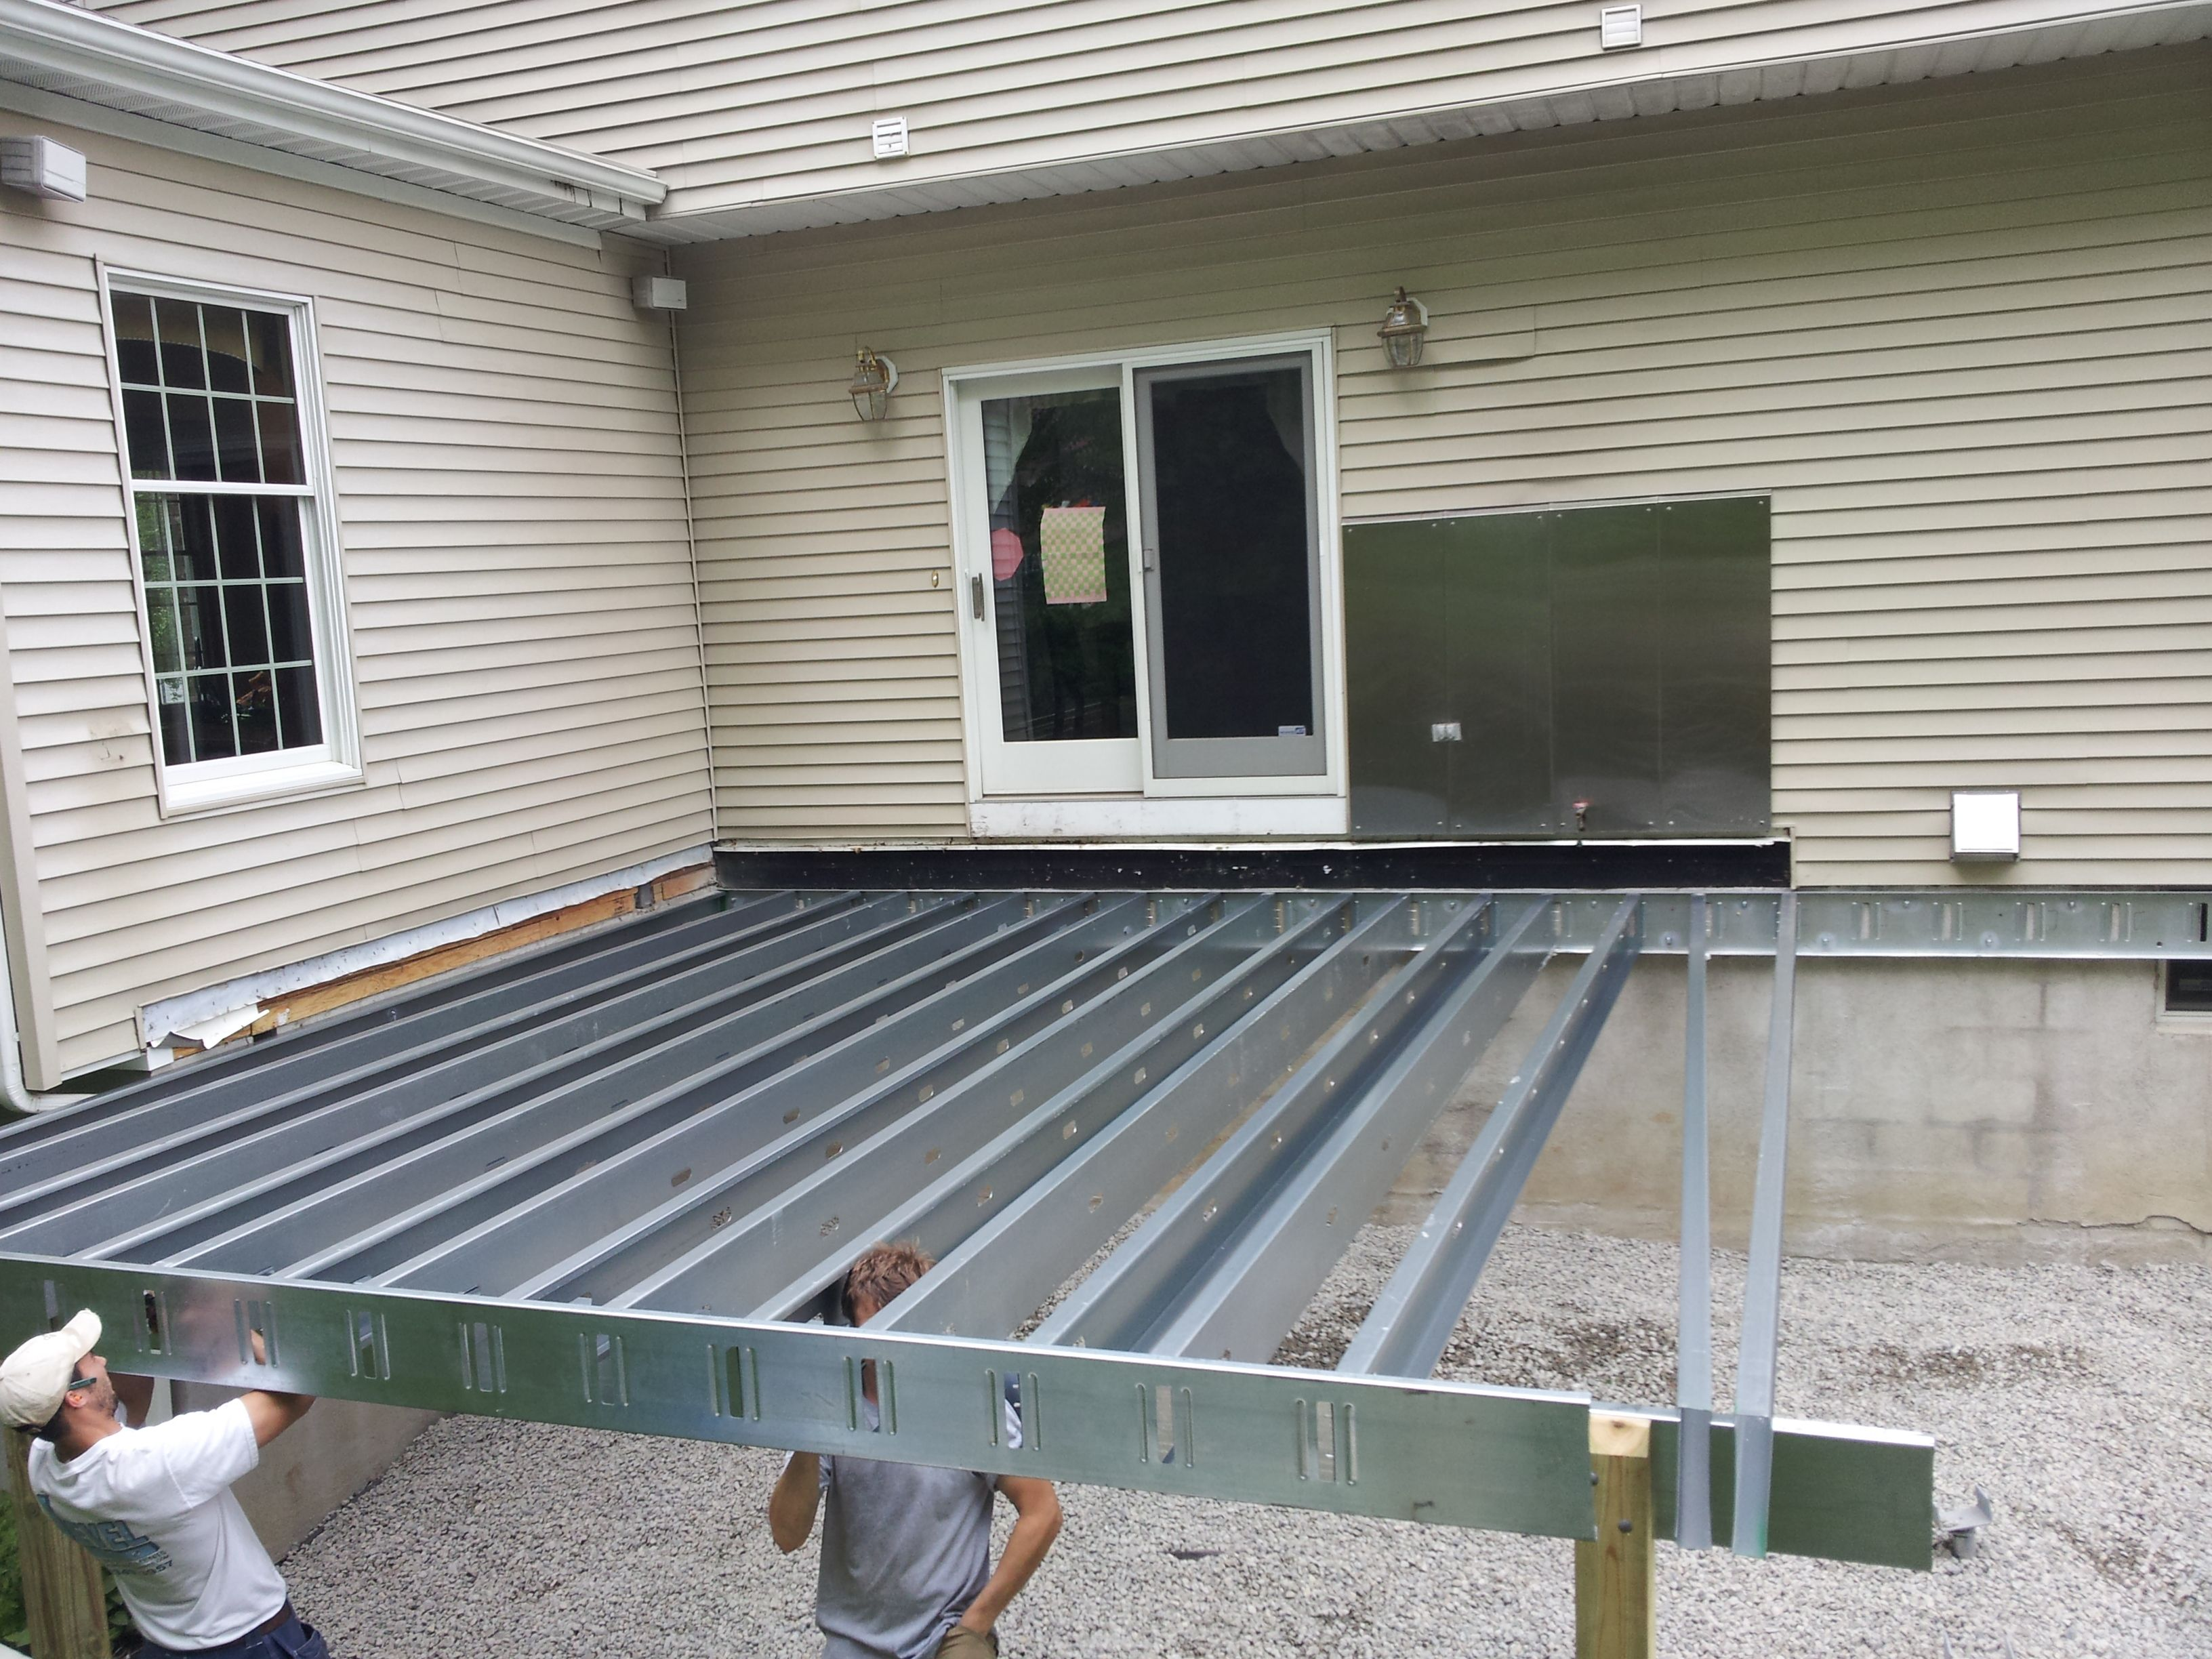 Ground Sheet Bunnings Steel Deck Framing In New Jersey Decks 4 Cabin Steel